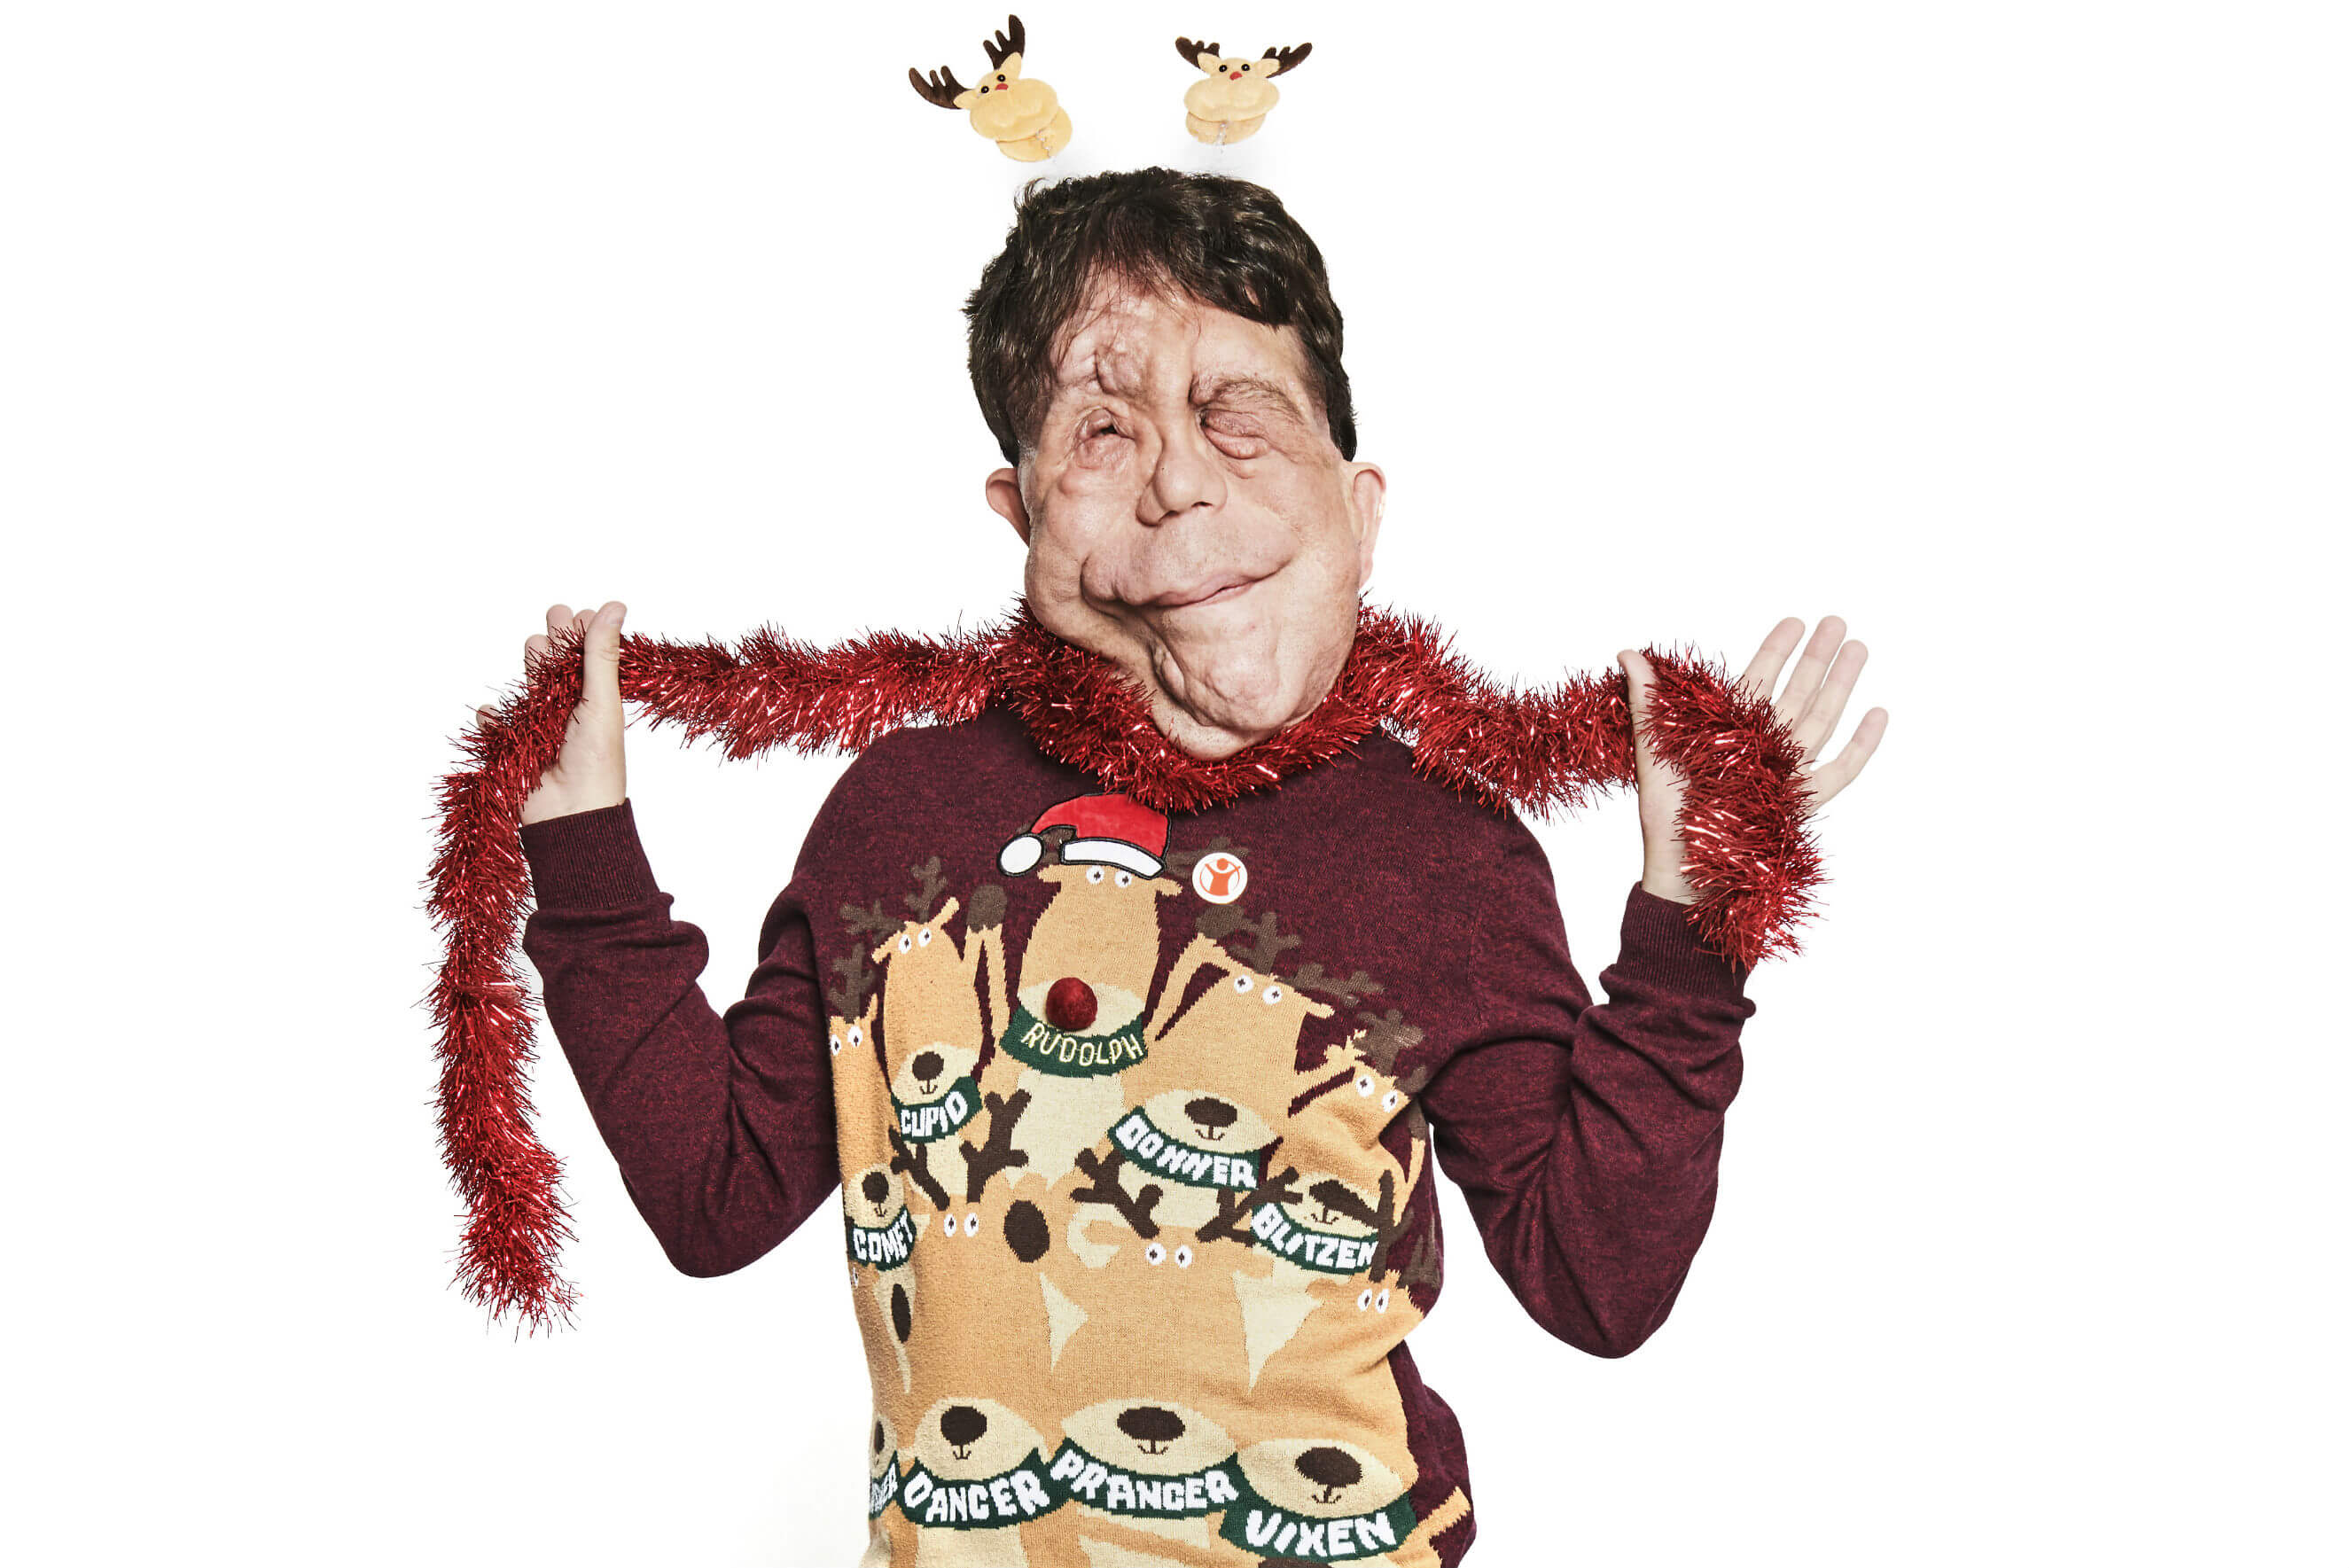 Adam Pearson puts on his Christmas Jumper and tinsel for Save the Children's Christmas Jumper Day.